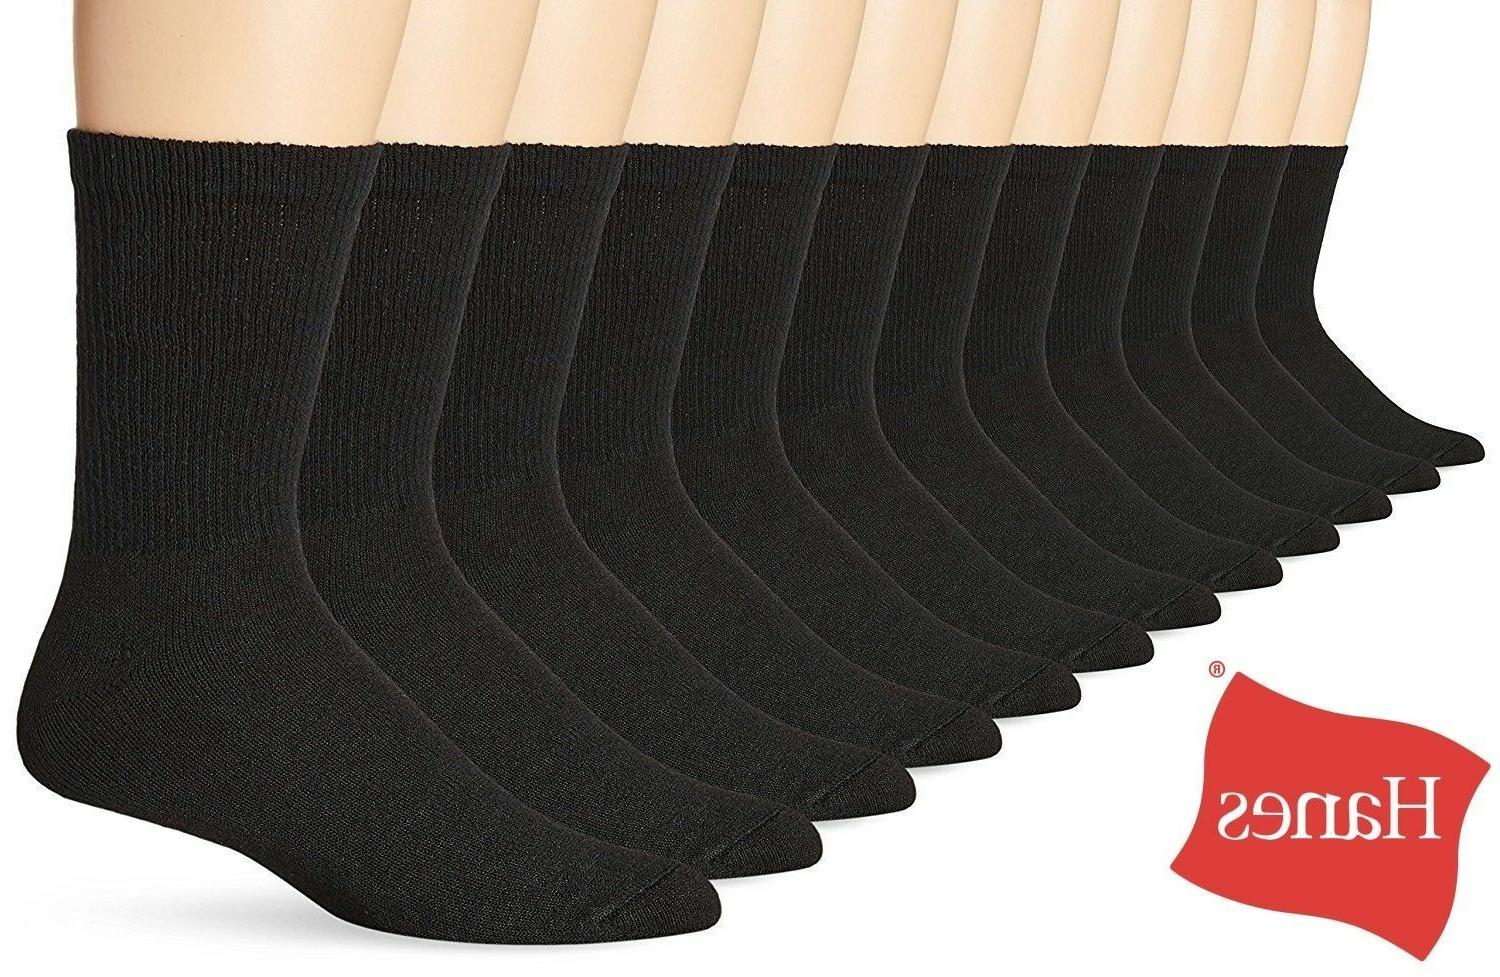 Hanes New Classics 6 Pack Premium Men's Socks, Crew, Black,